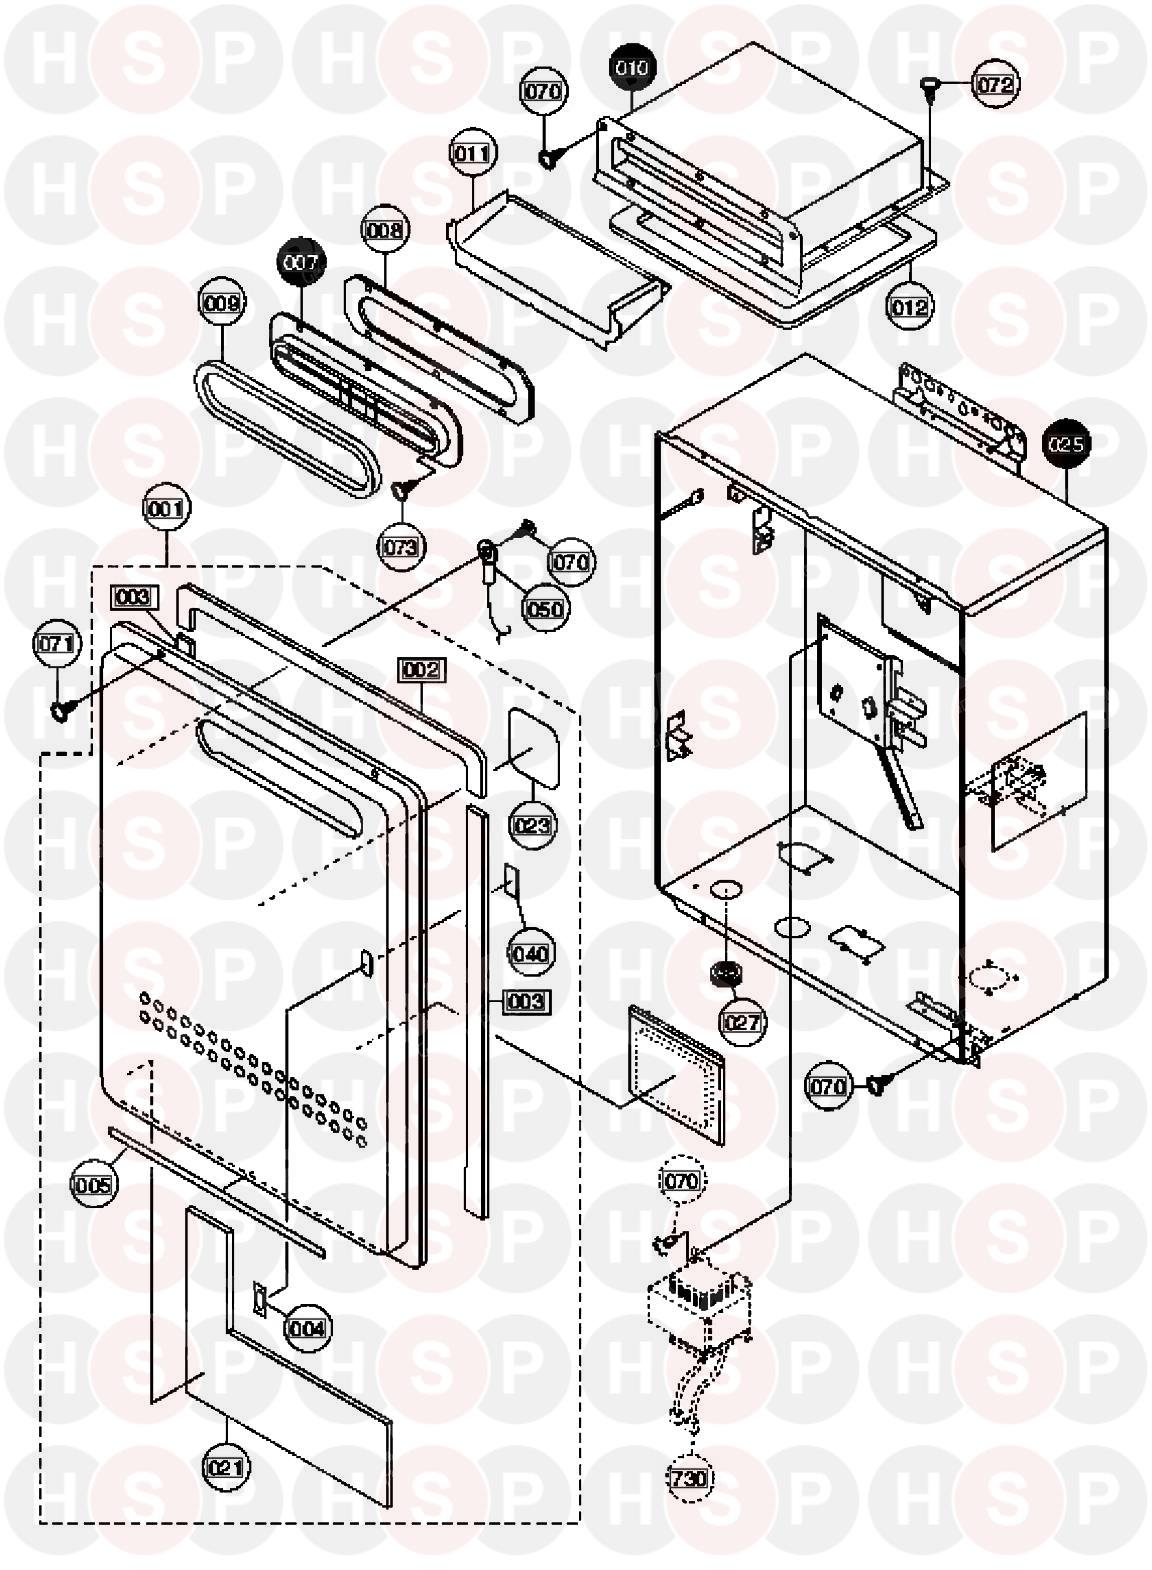 commercial heating boiler diagrams